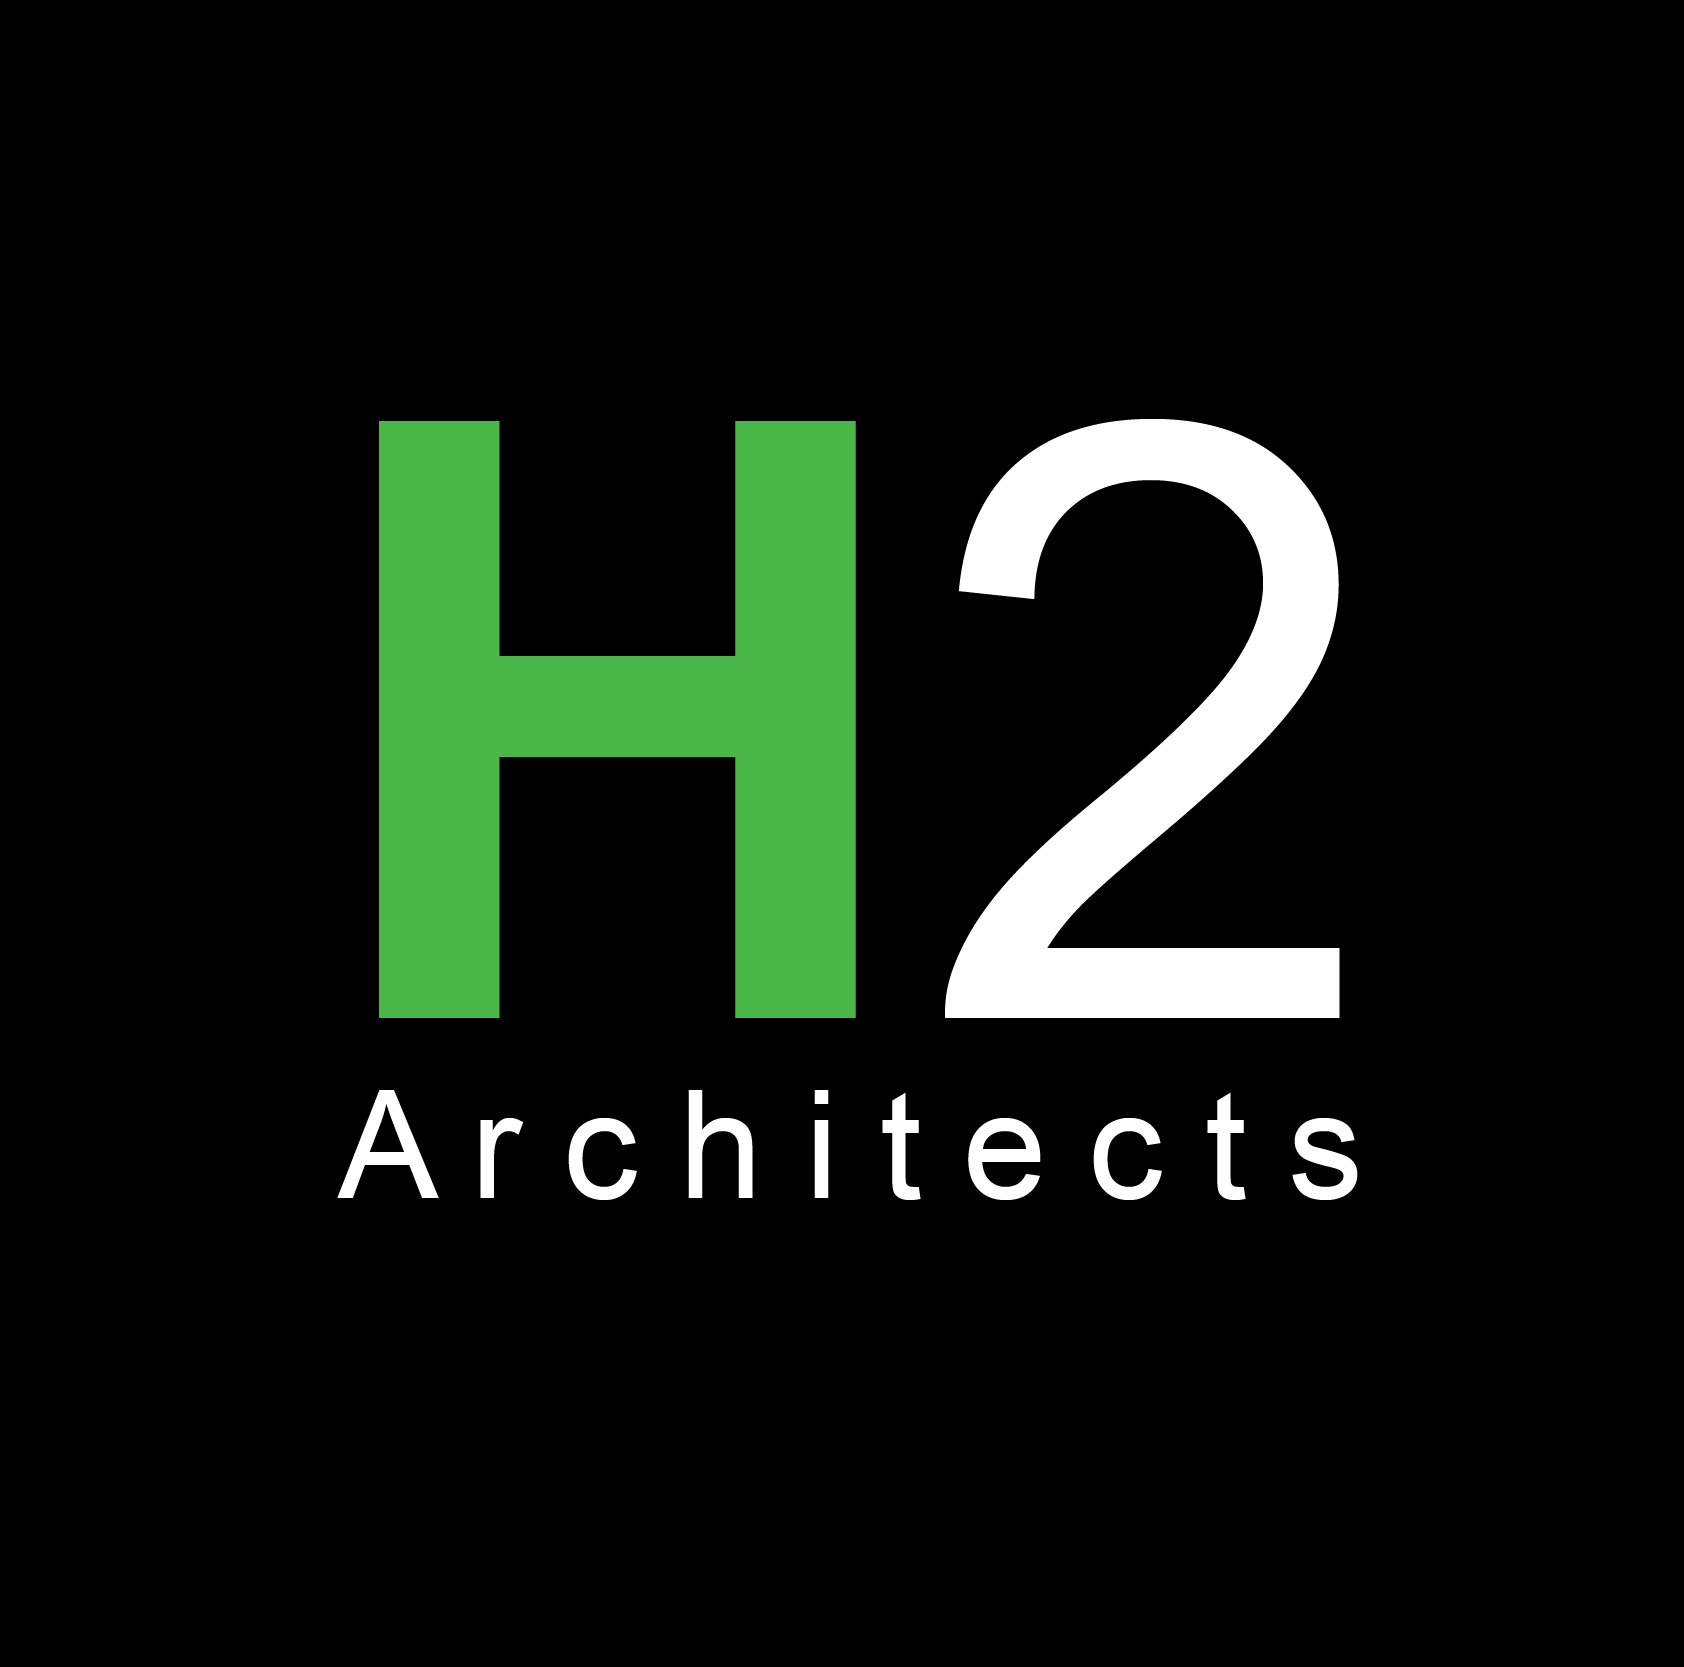 H2 Architects Logo 9.16.19.png